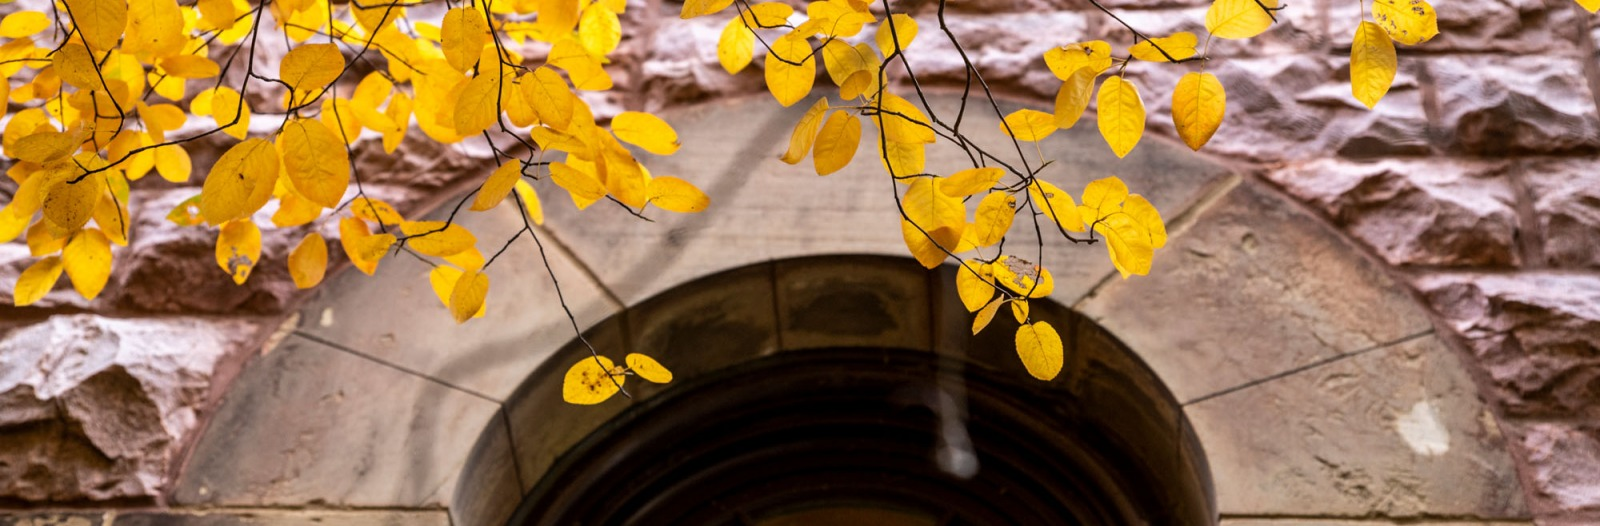 Yellow leaves in front of arched window